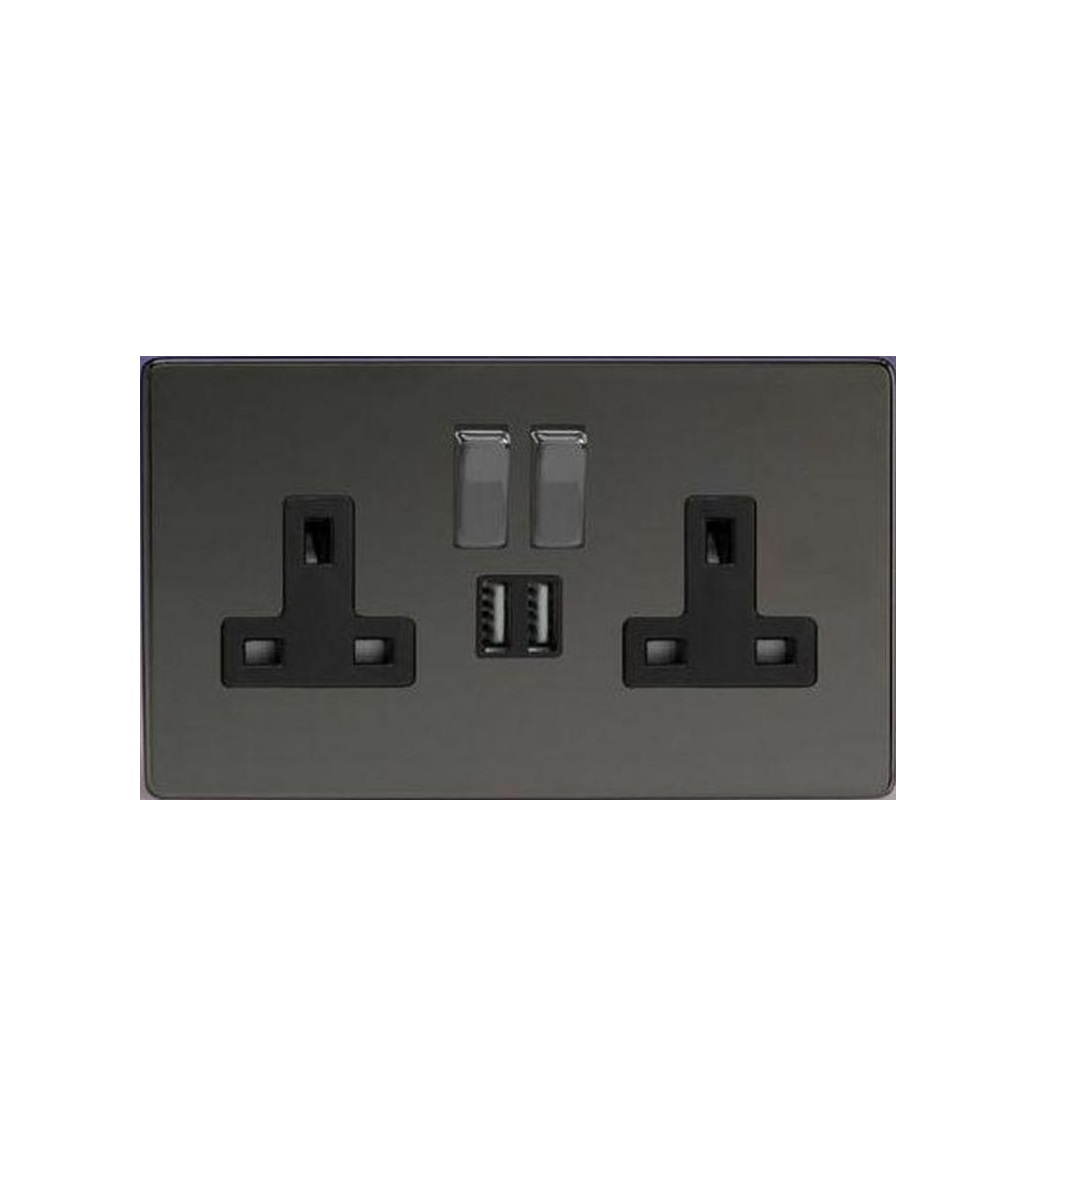 5 x black nickel double socket usb 13a 2 gang electric wall plug socket 5 pk